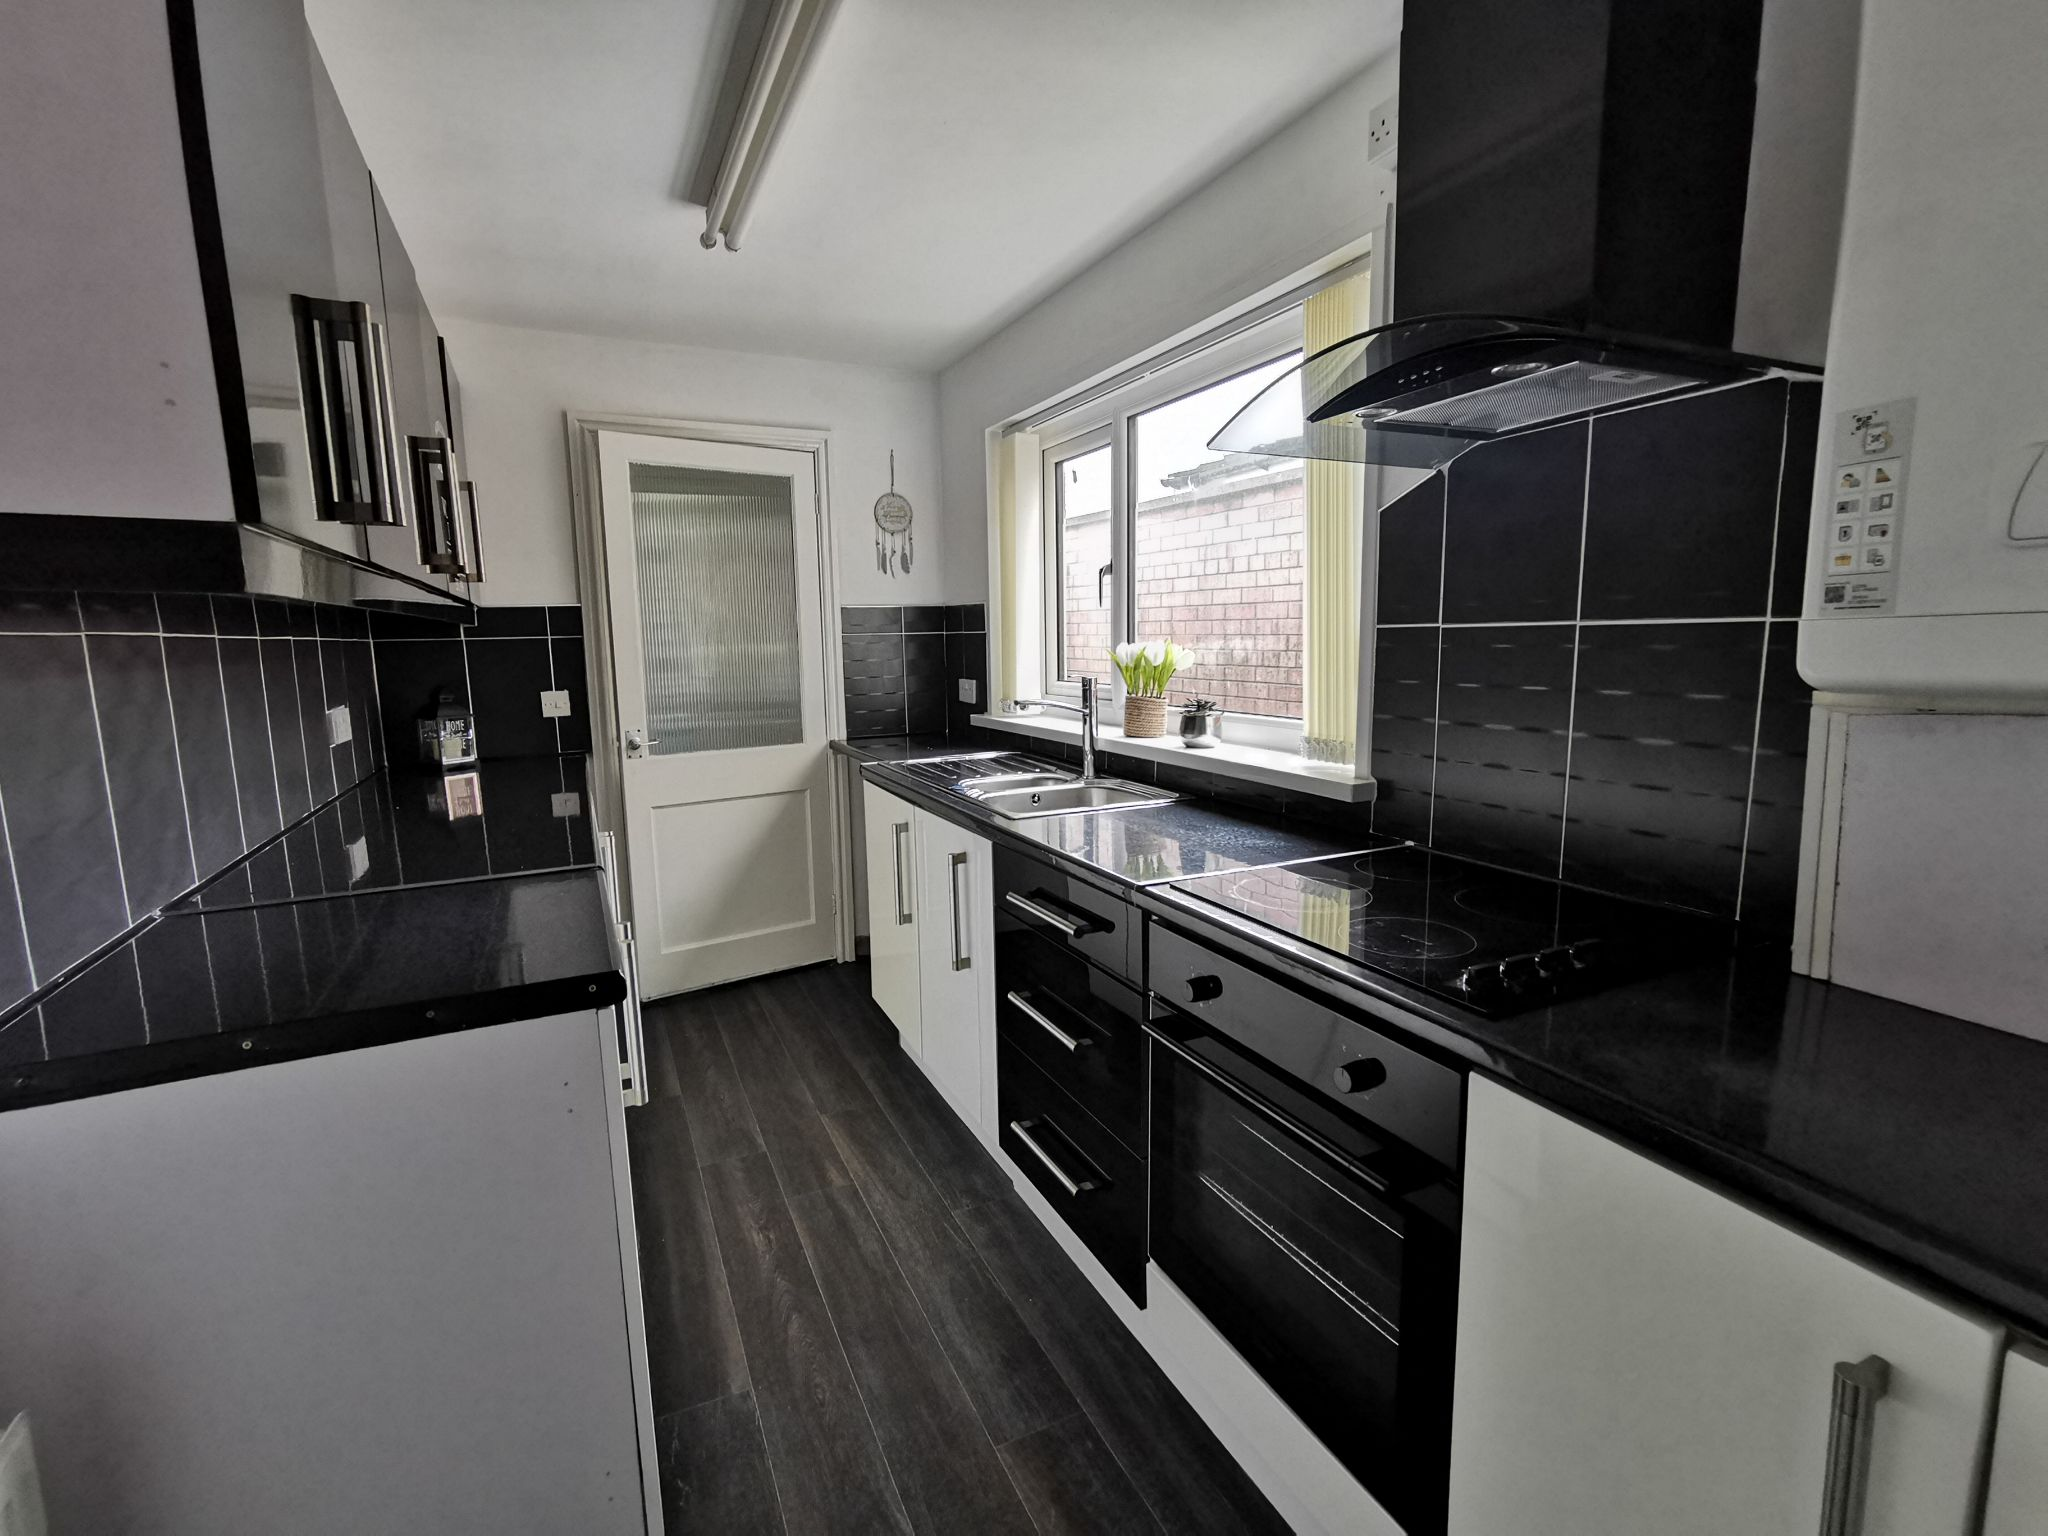 2 bedroom mid terraced house For Sale in Allerdale - Photograph 5.